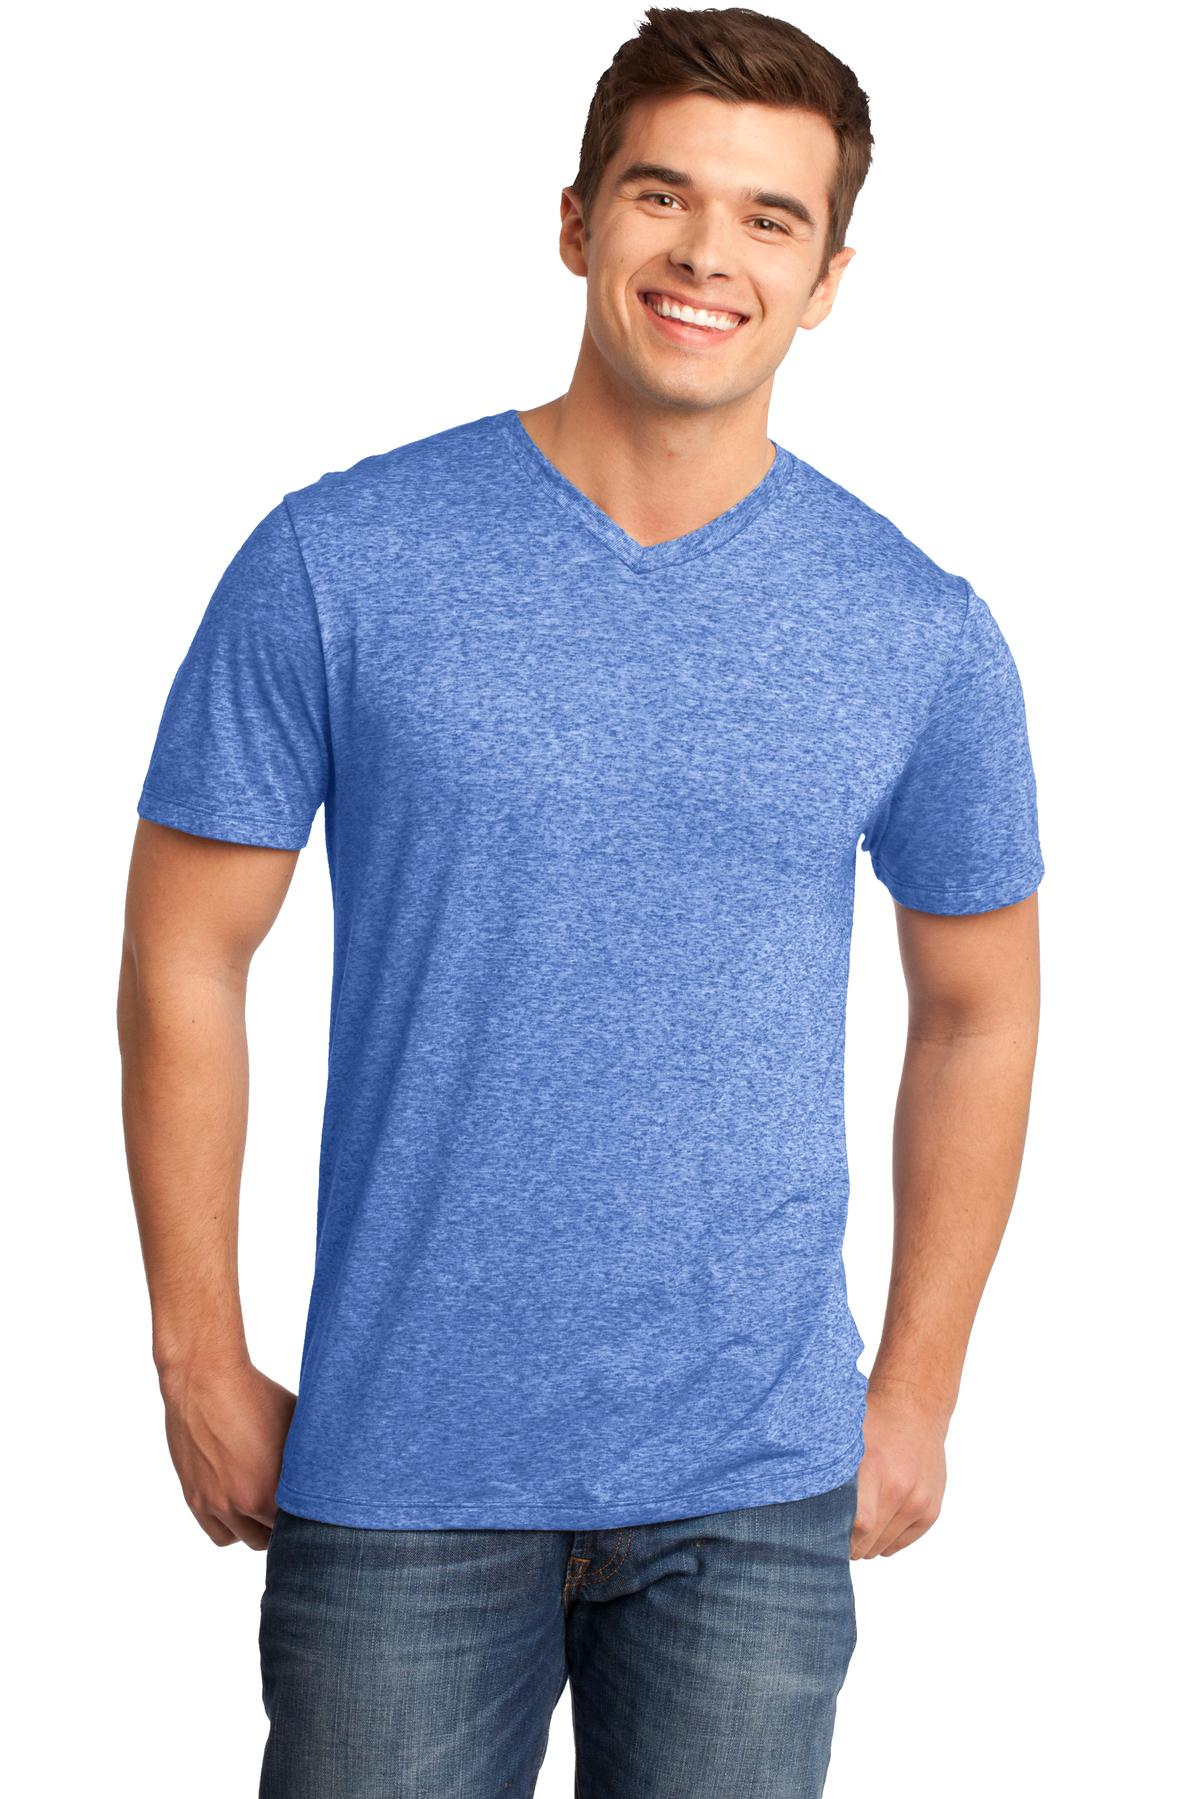 CLOSEOUT District - Young Mens Microburn V-Neck Tee. DT161